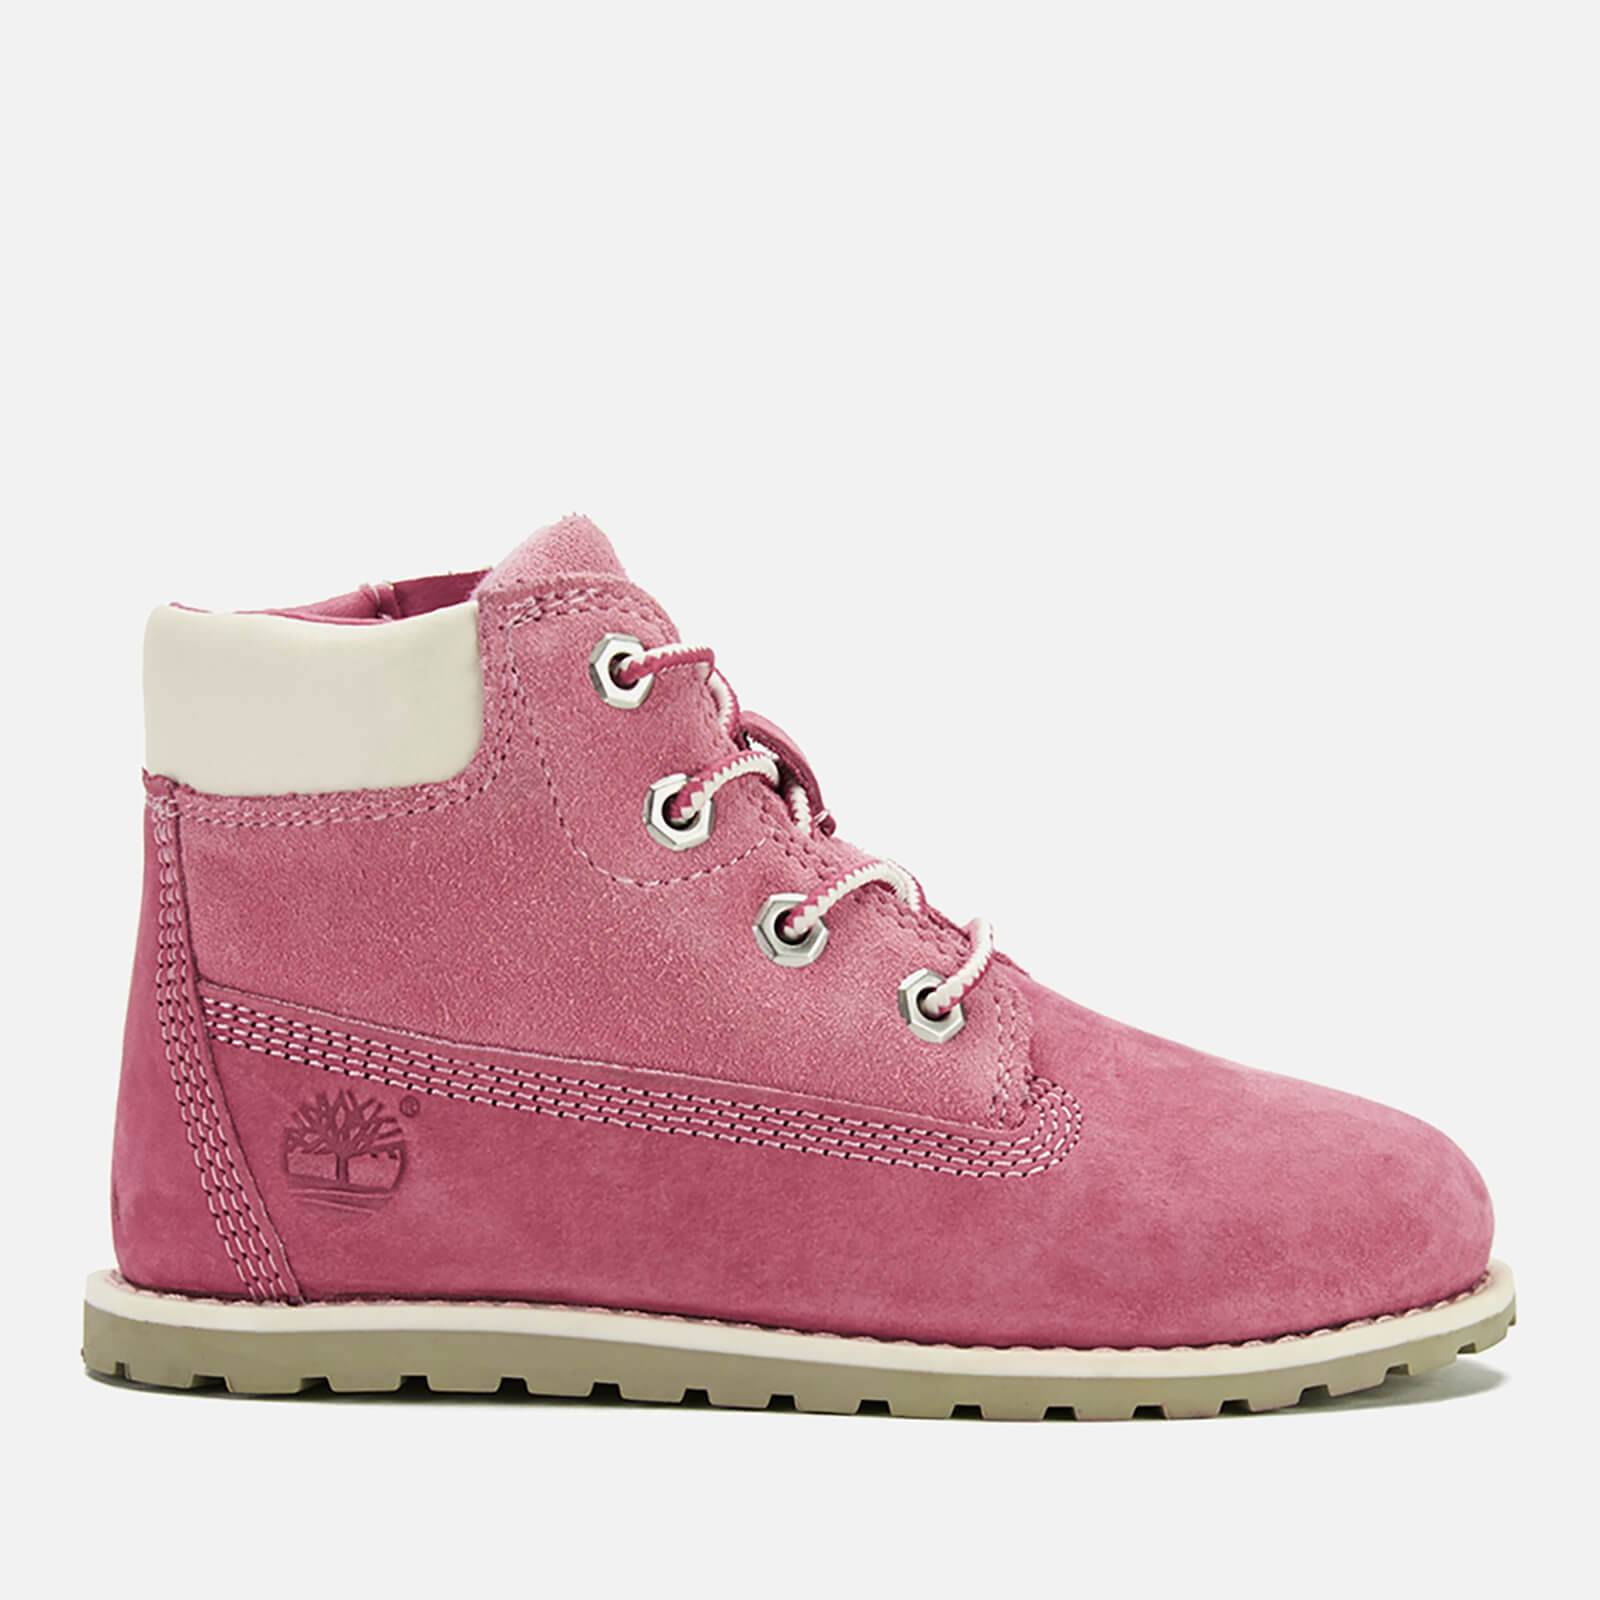 Timberland Toddlers' Pokey Pine Leather 6 Inch Zip Boots - Pink - UK 5 Toddler